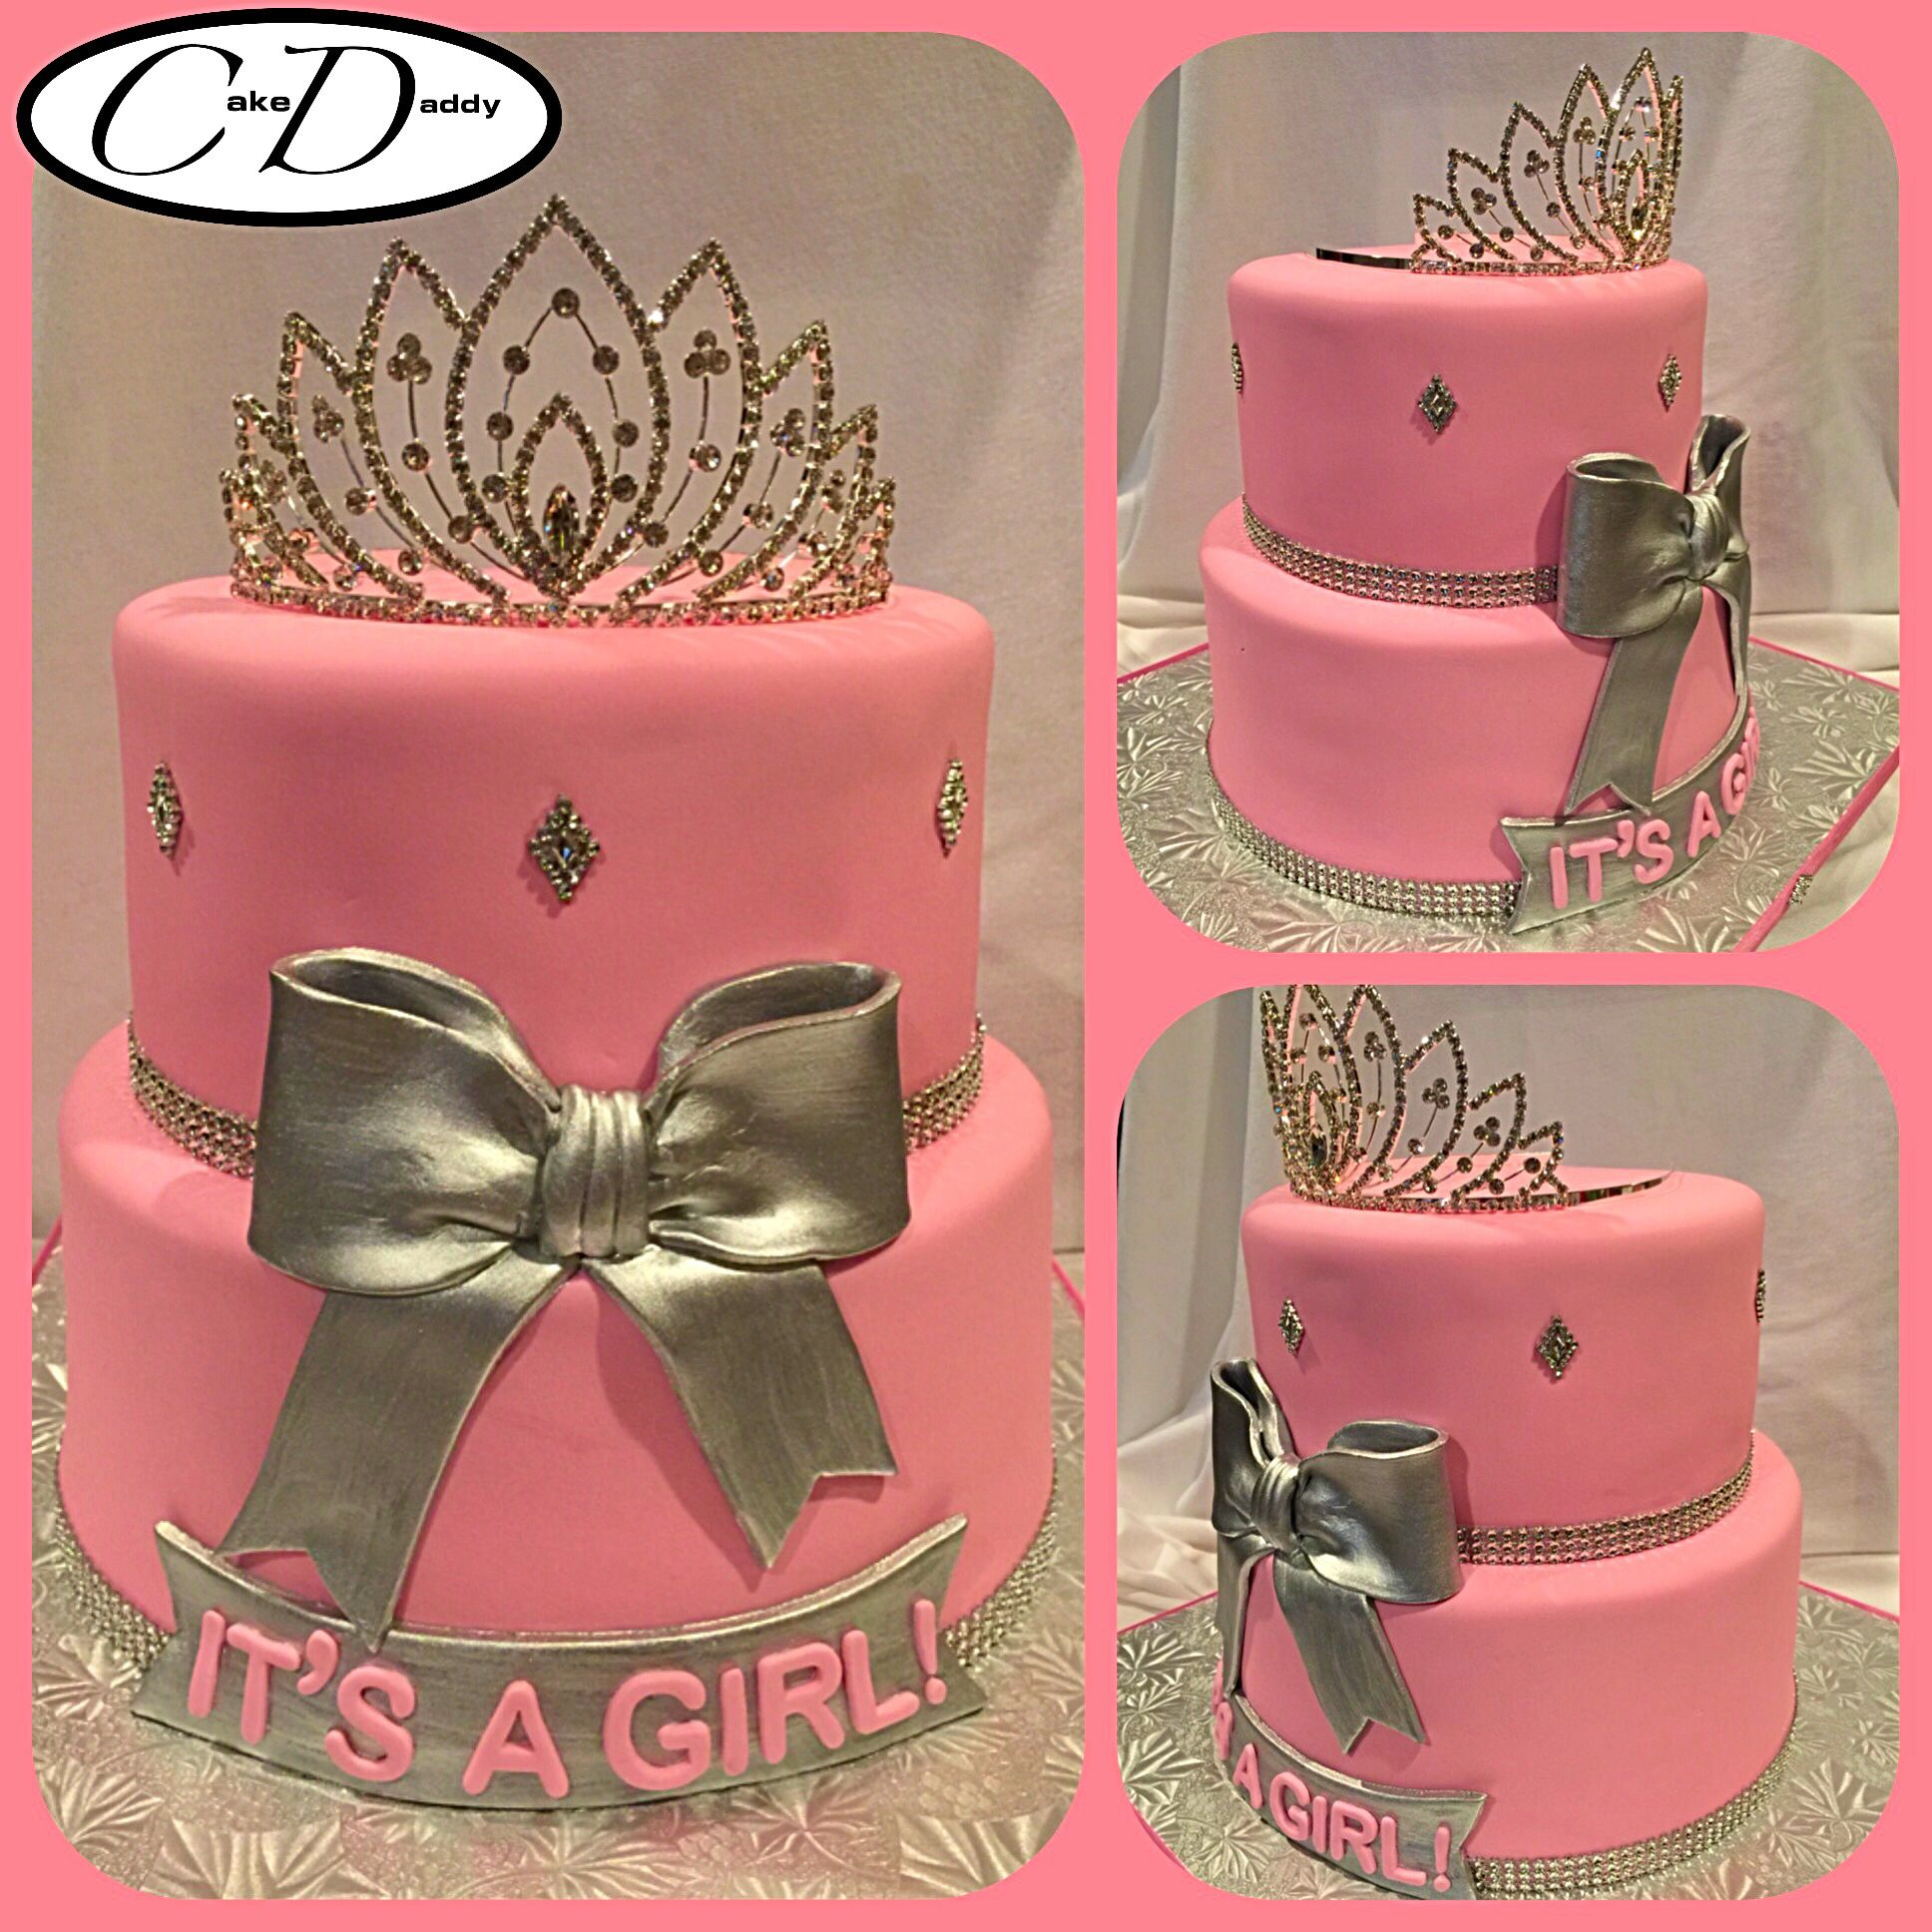 IT S A GIRL pink and silver princess themed baby shower cake